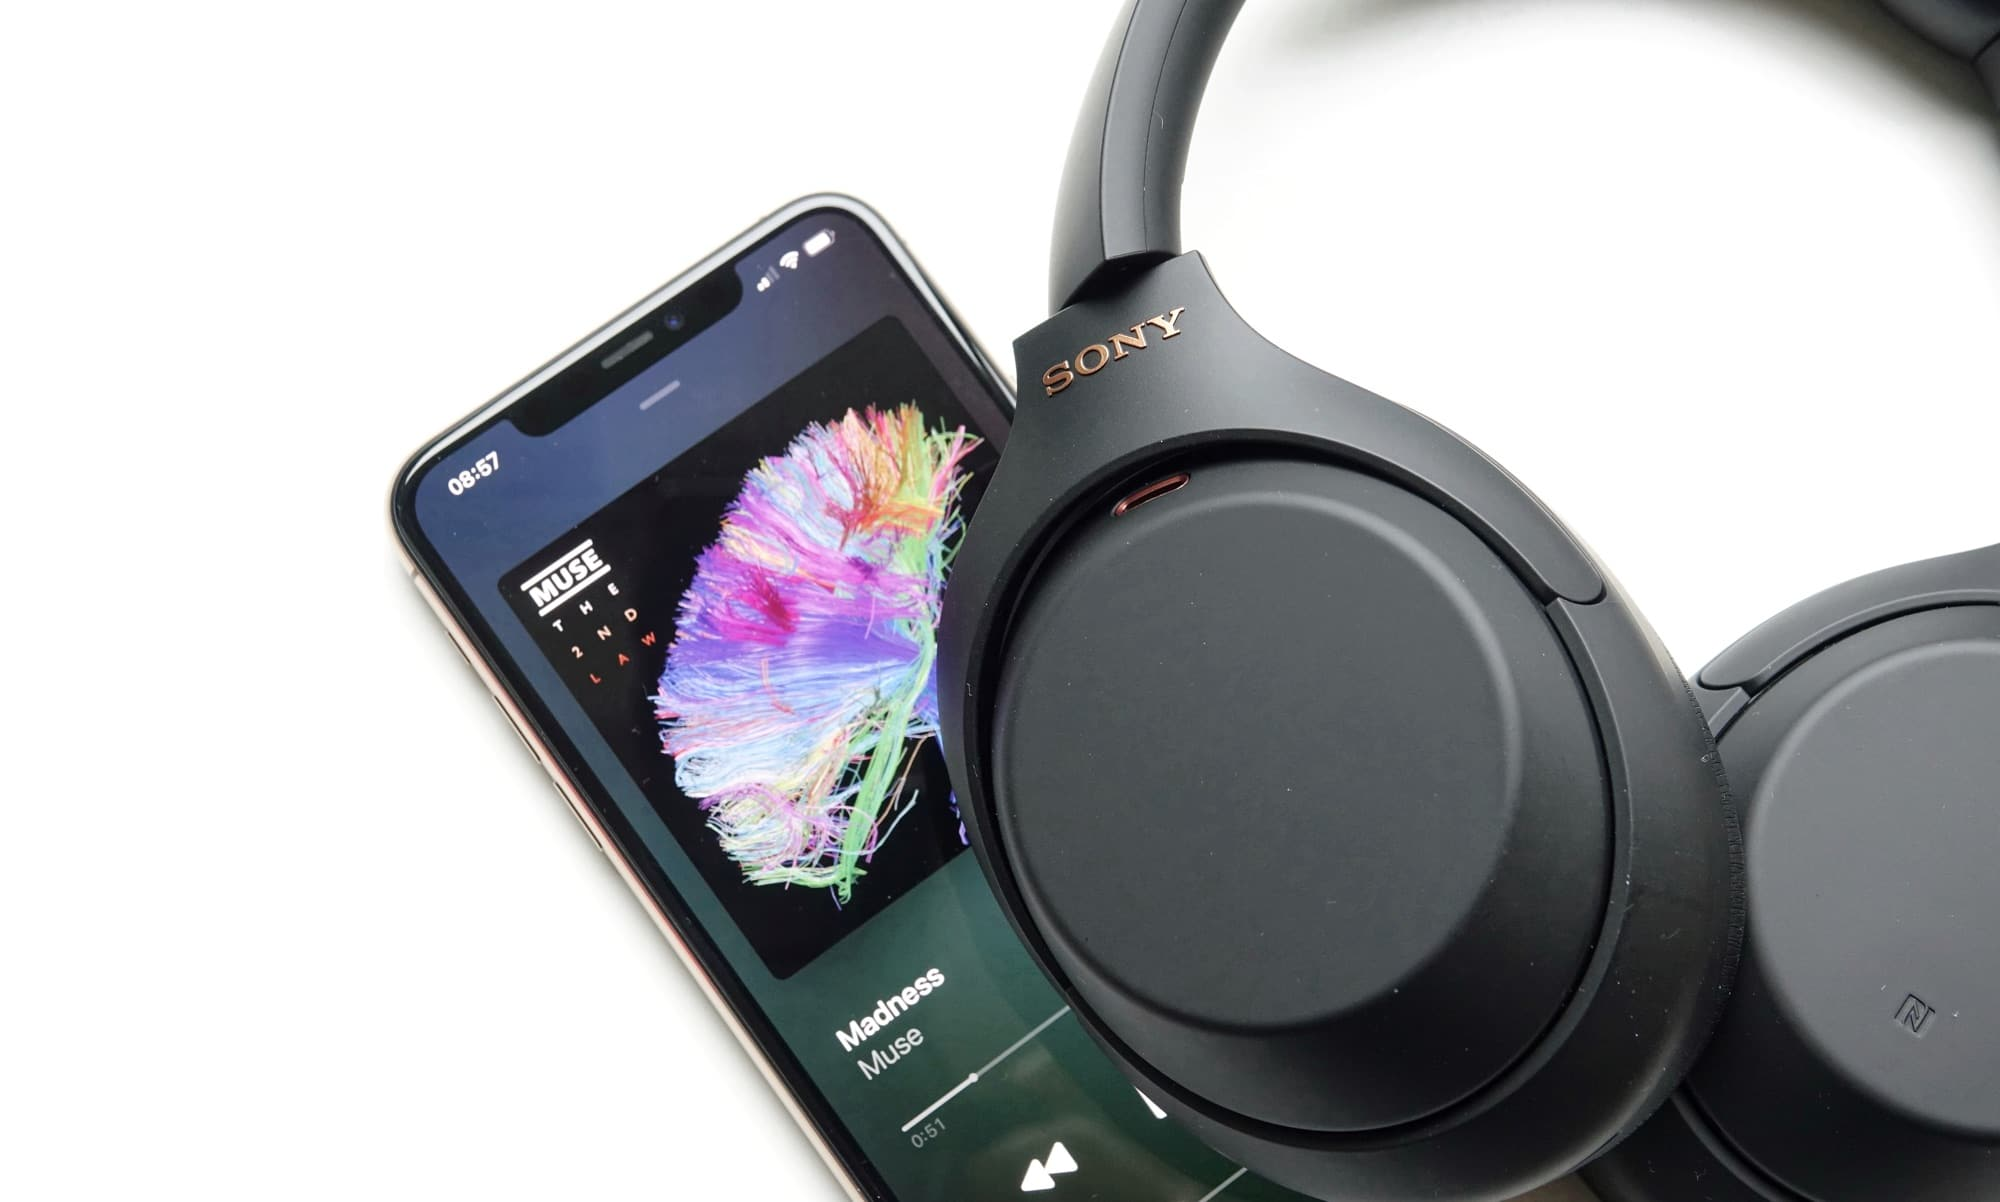 Sony WH-1000XM4 on an iPhone 11 Pro Max